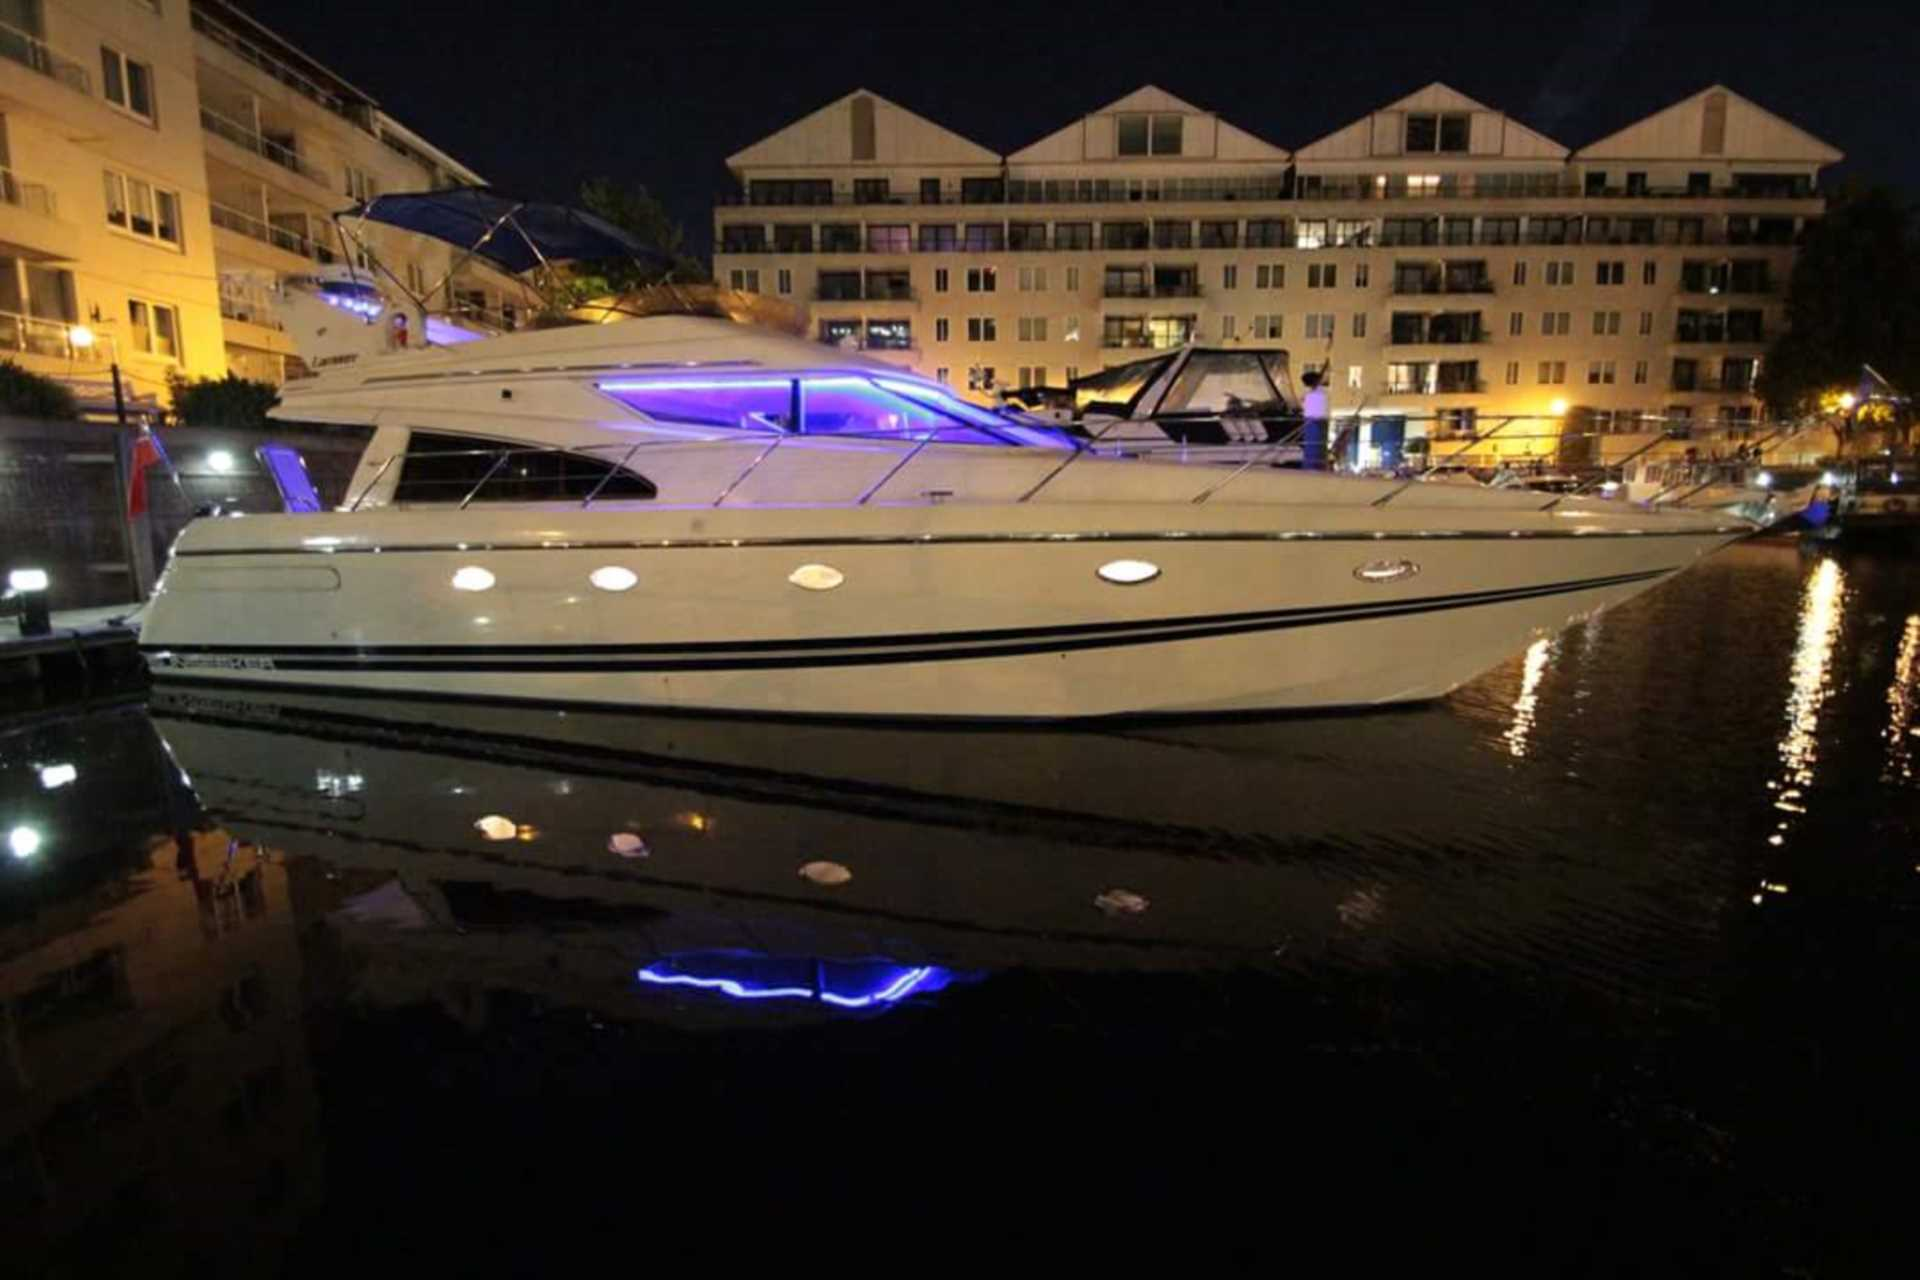 Sale of Vantage Yachts charter business & the Sunseeker Manhattan 54, Image 1